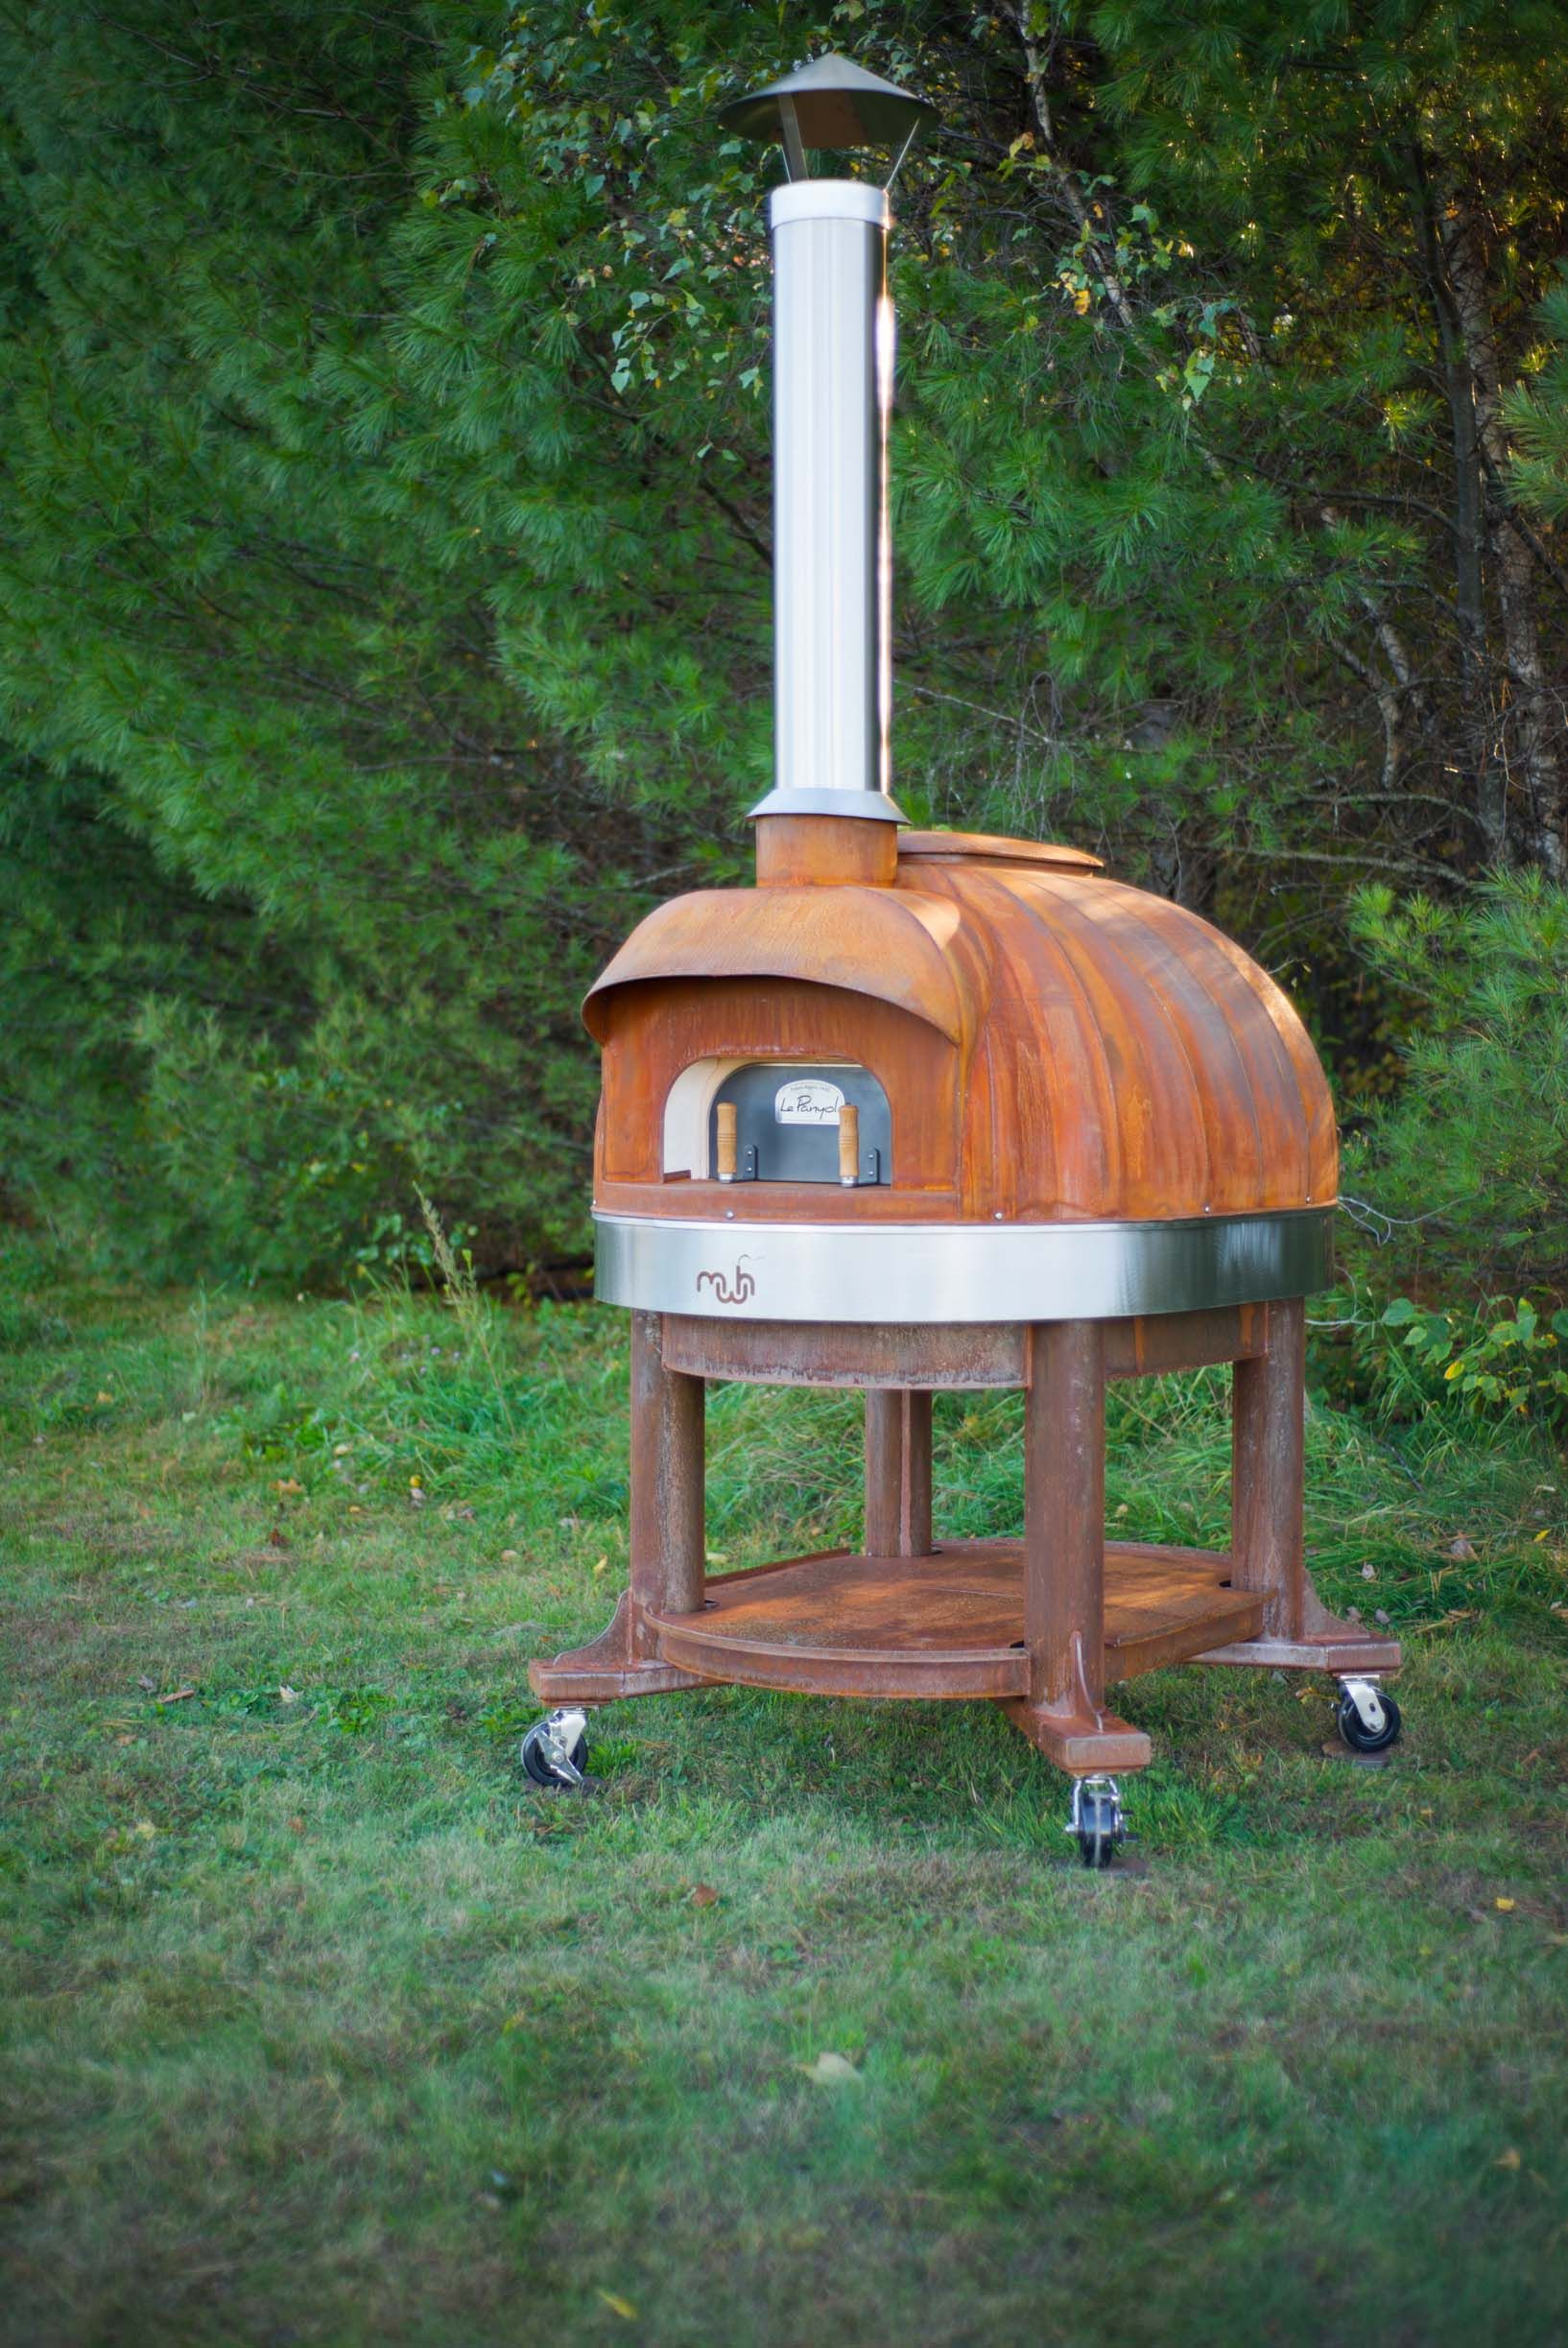 Mediterranean wood fired pizza oven - Corten Model 99 With Stand Made By Maine Wood Heat Company Wood Fired Oven Le Panyol Portable Pizza Oven